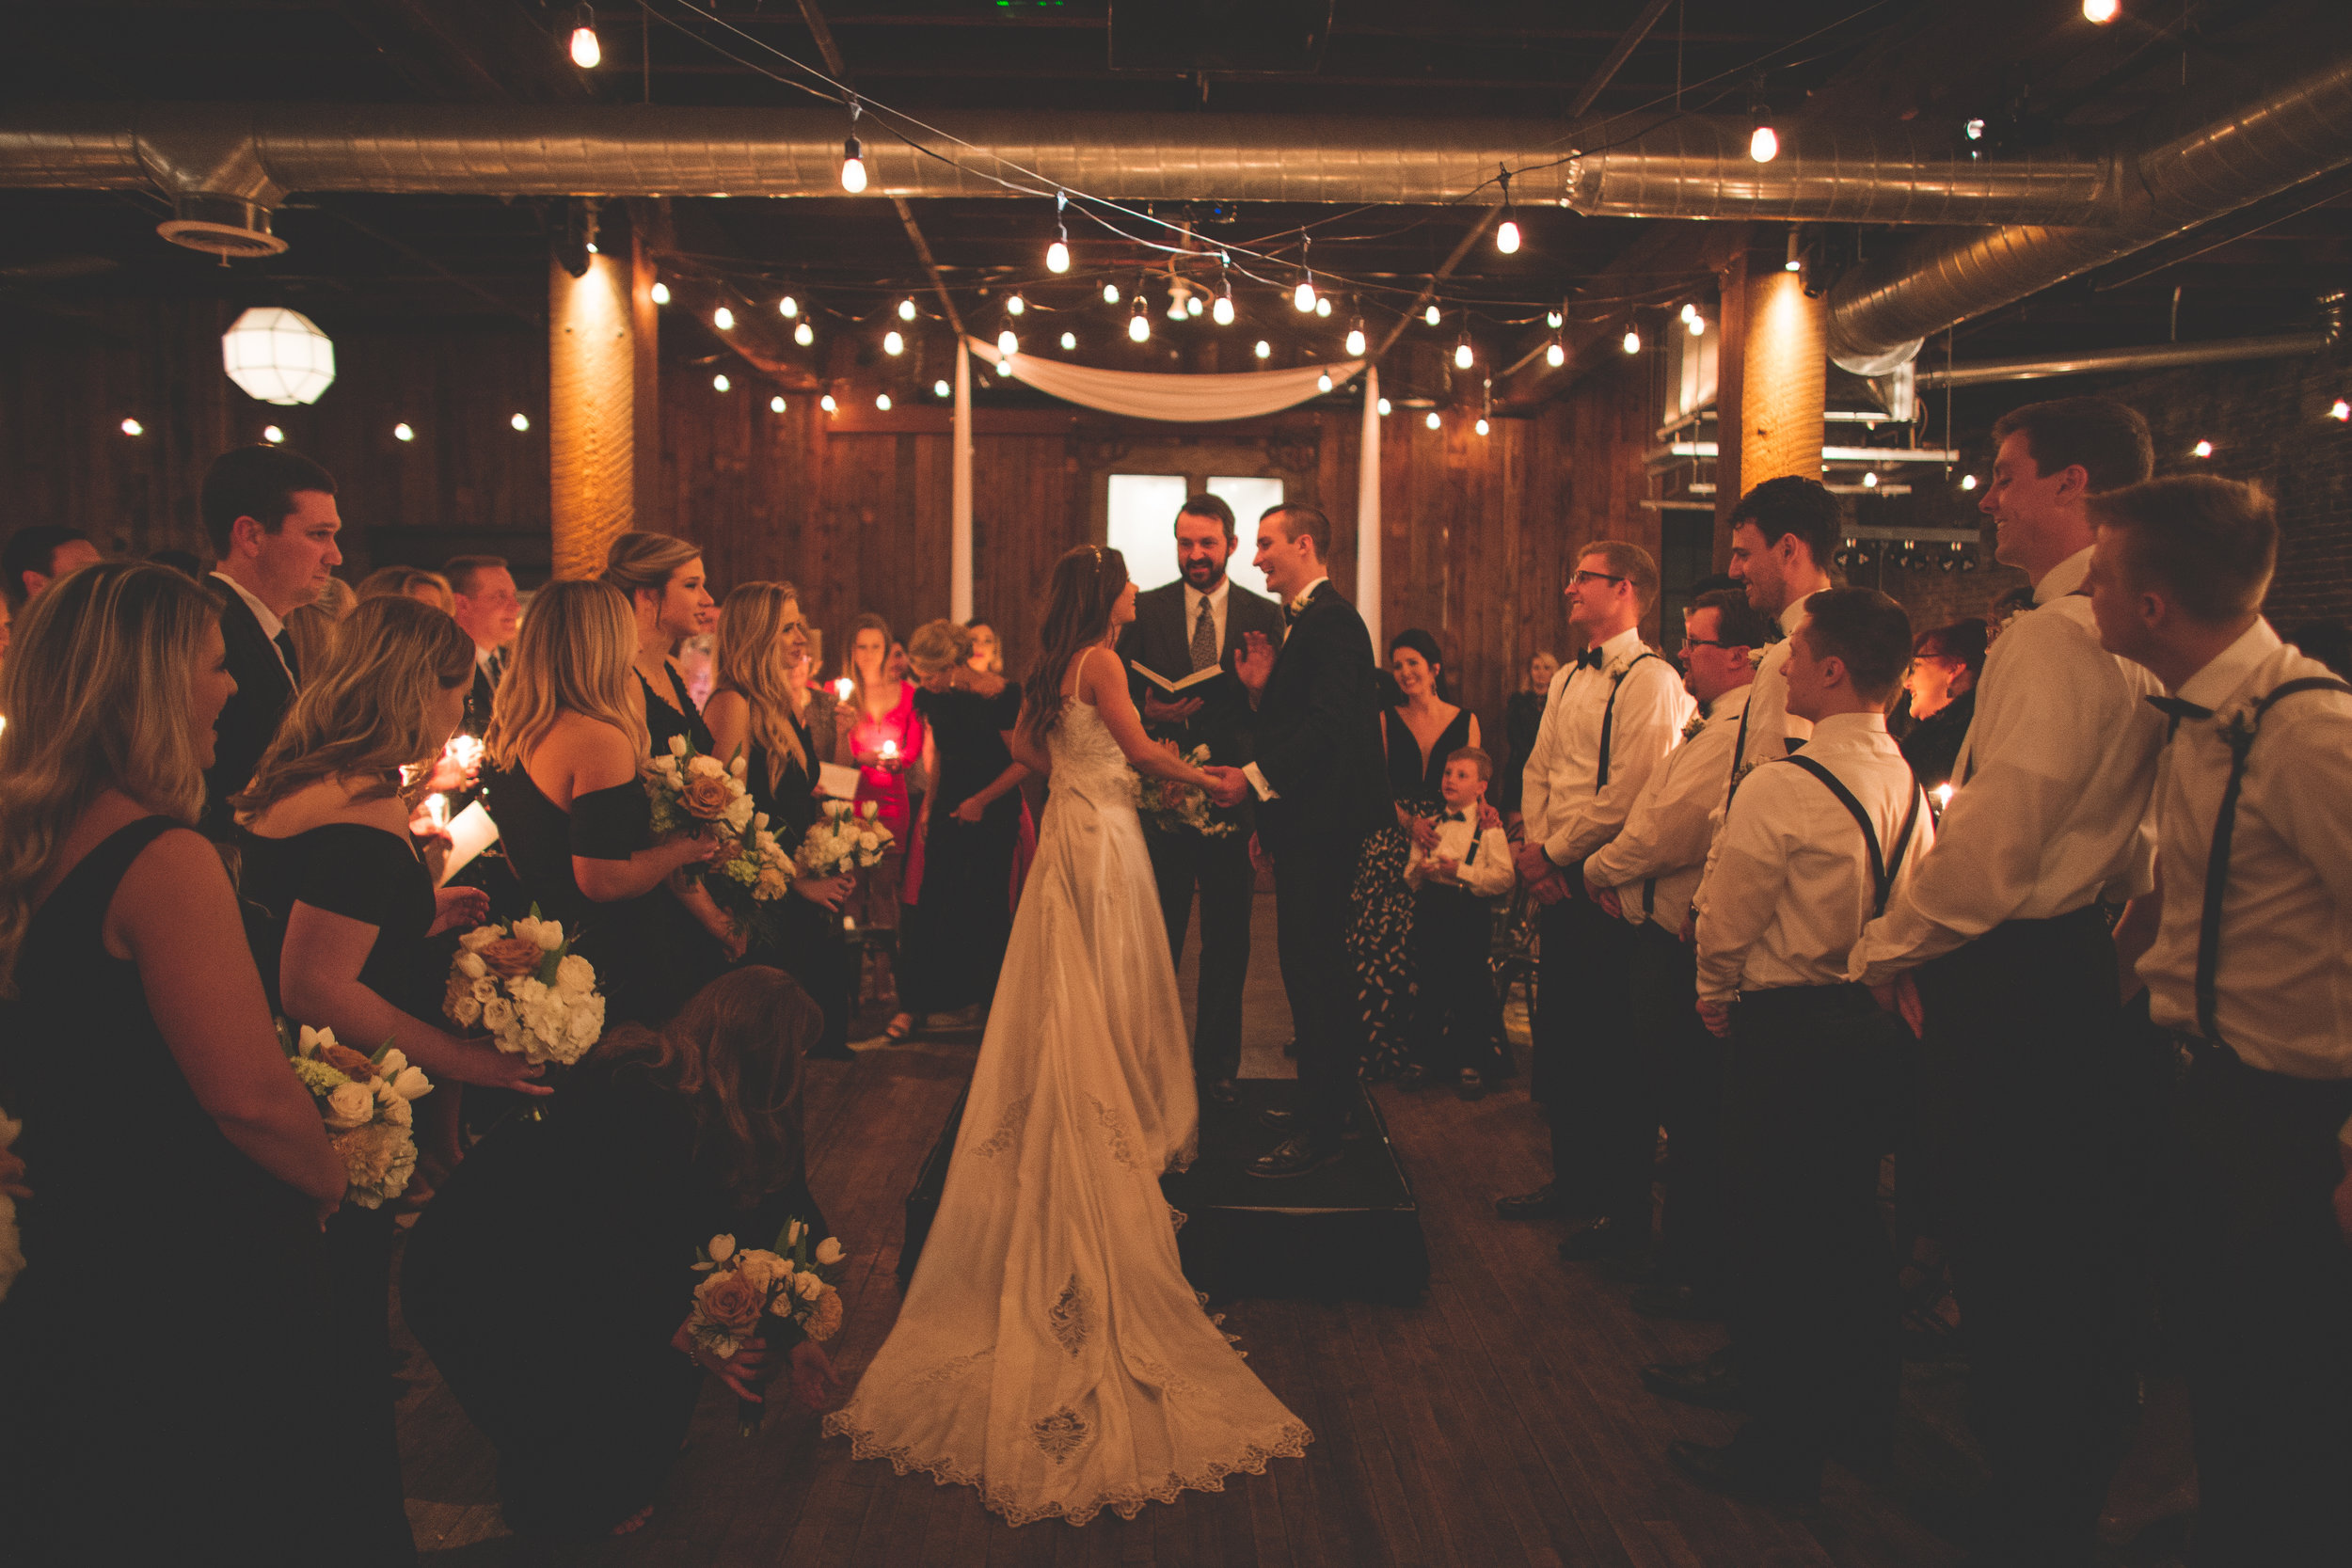 foundation-event-space-kansas-city-wedding-photographer-jason-domingues-photography-kylie-justin-blog-0033.JPG